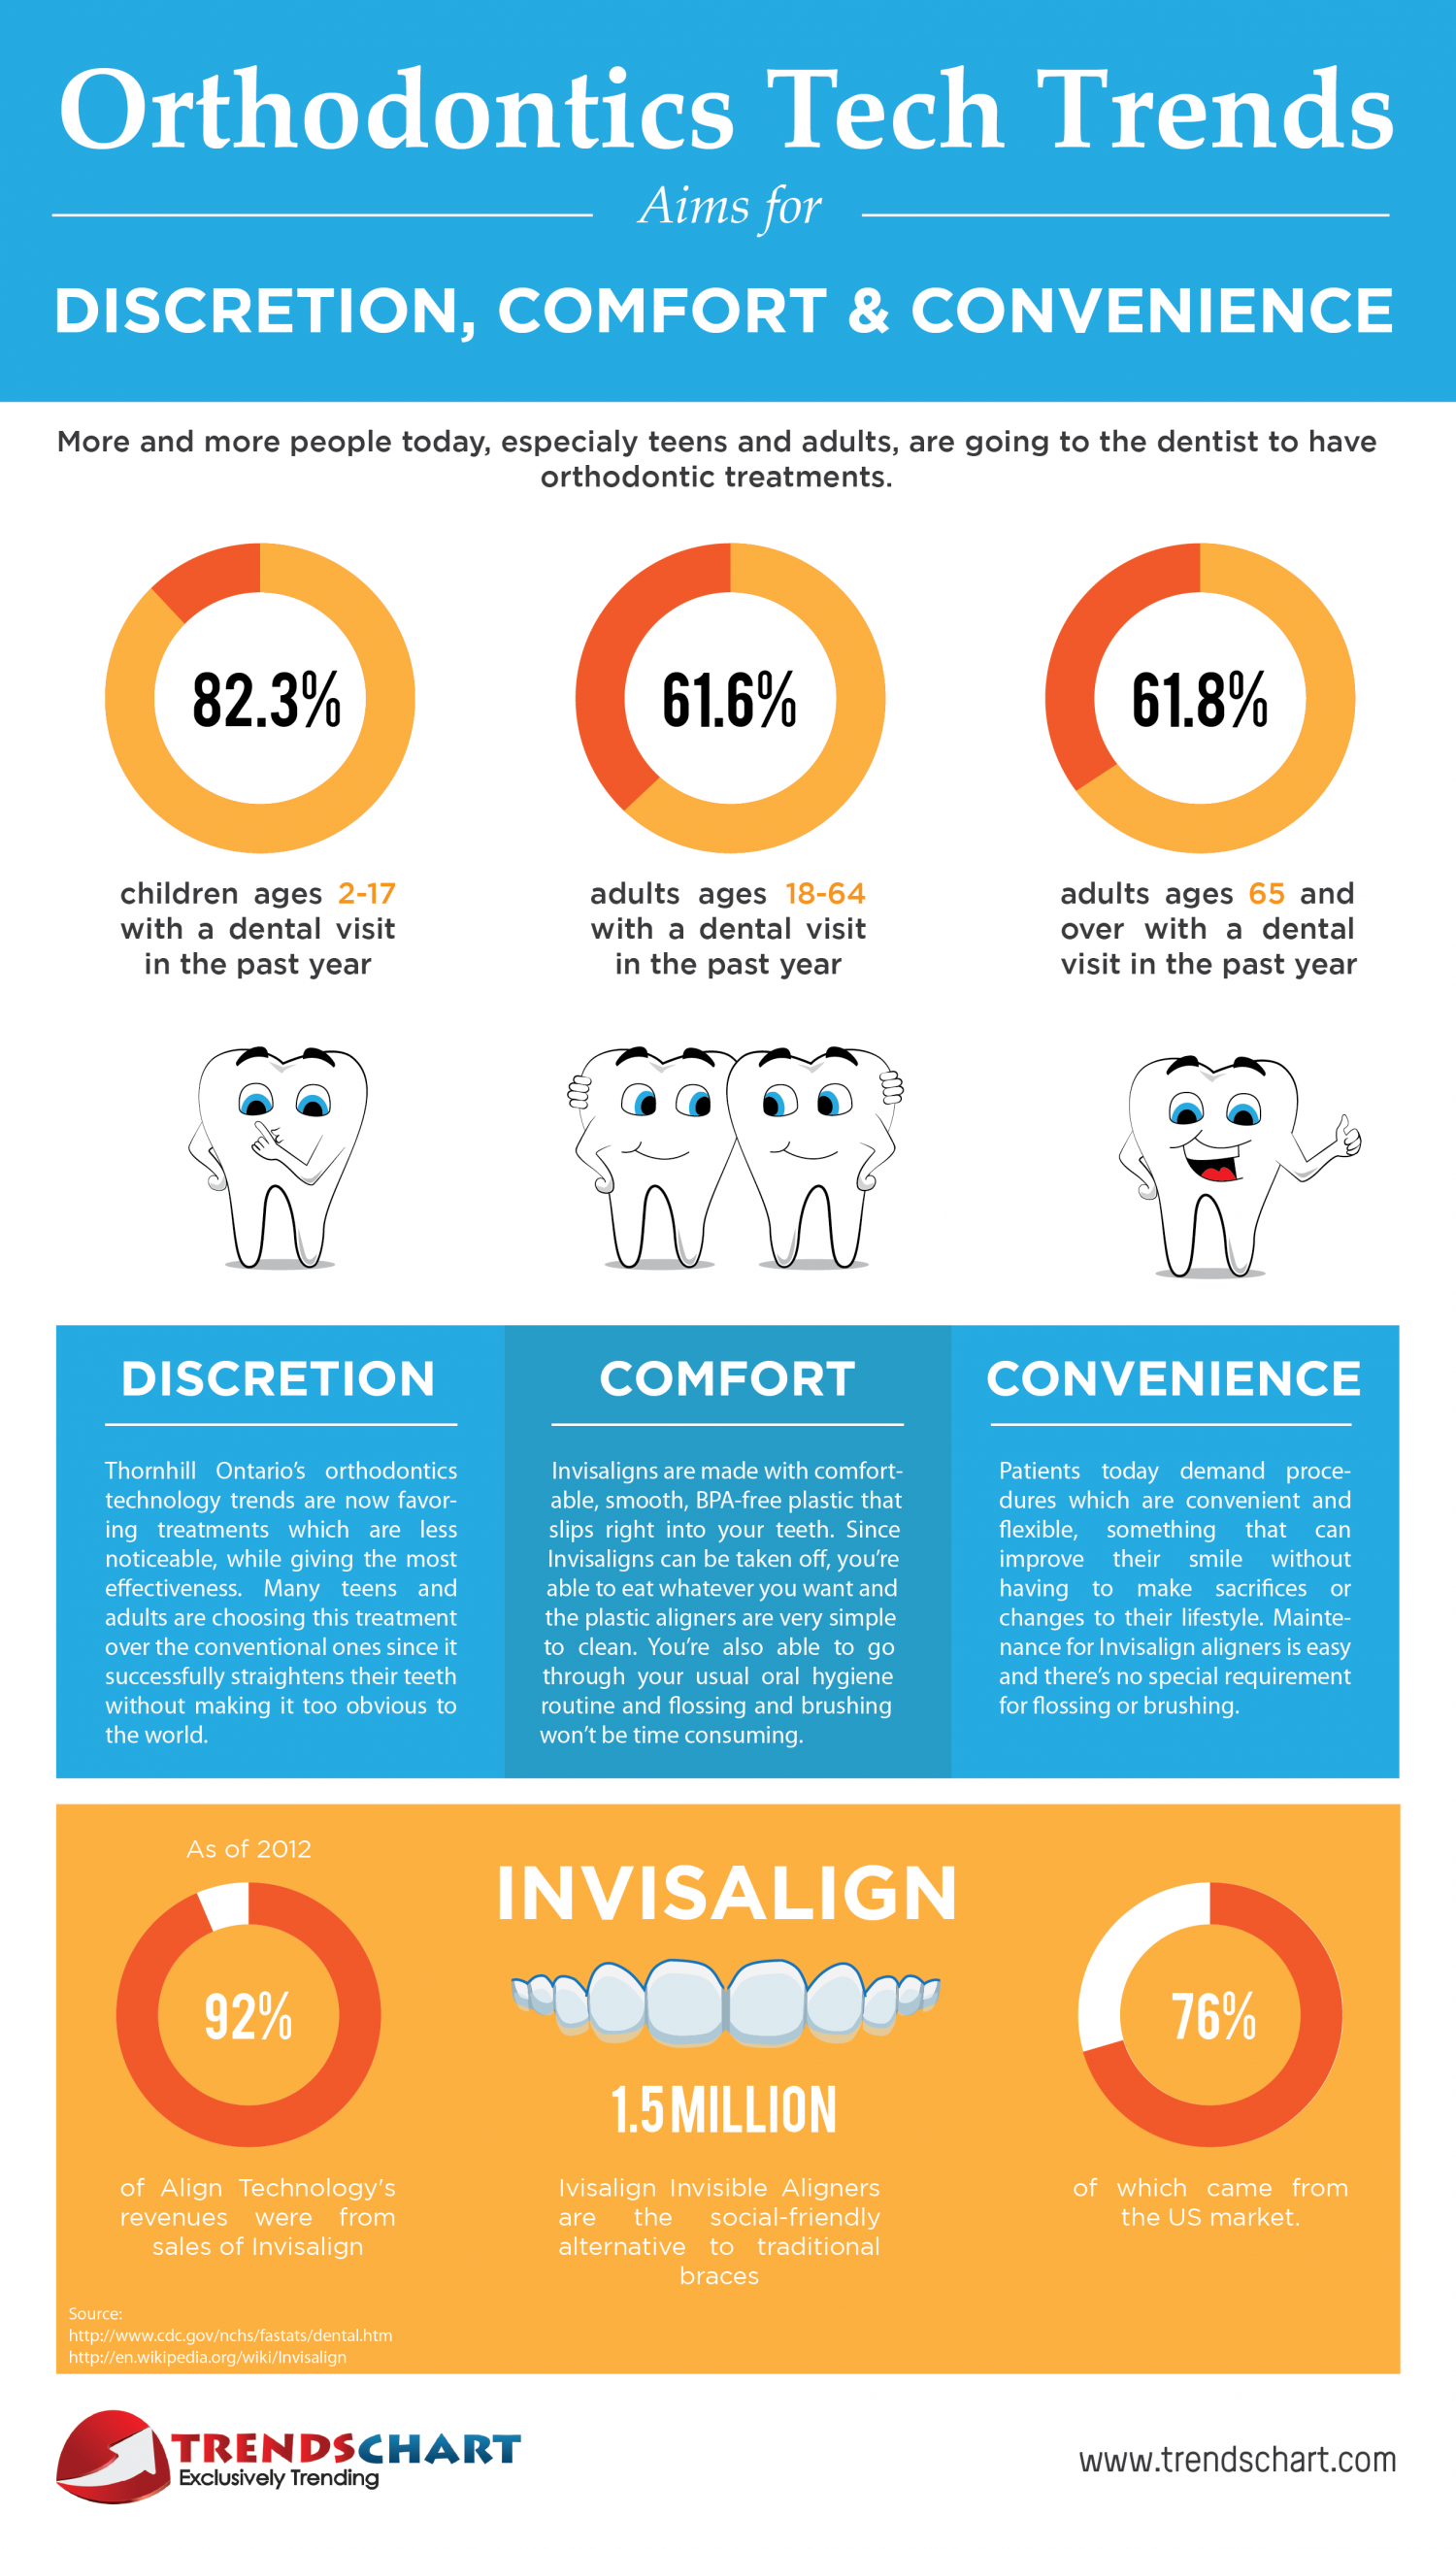 Orthodontics Tech Trends Aims for Discretion, Comfort, and Convenience Infographic